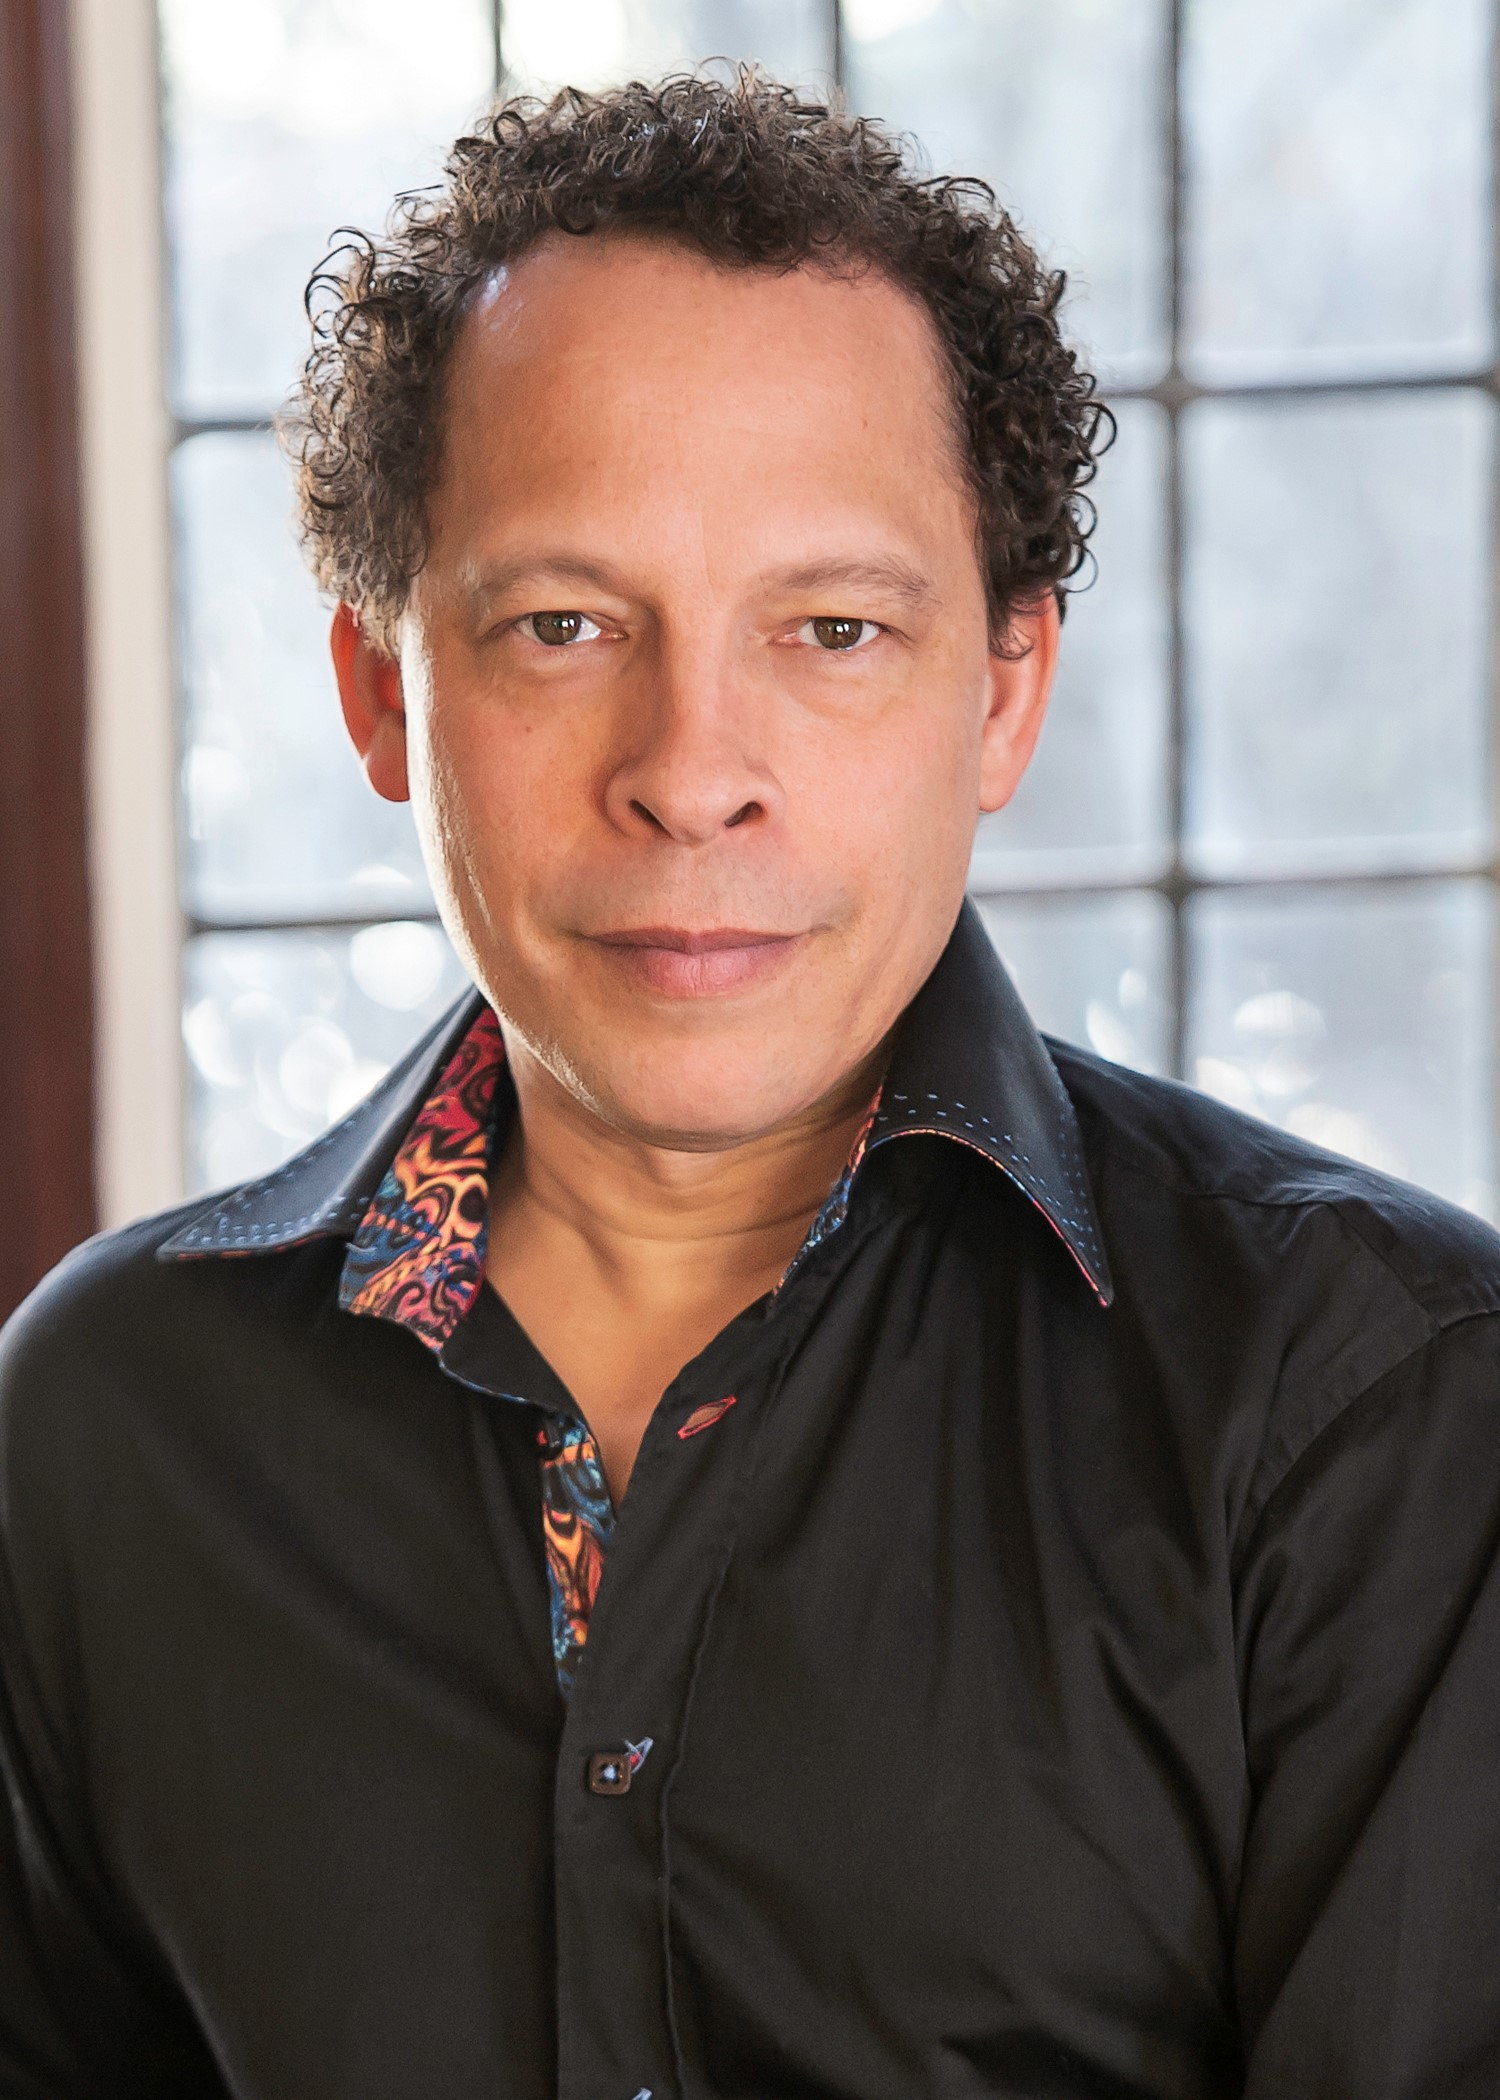 Participate in a book discussion with award-winning author Lawrence Hill